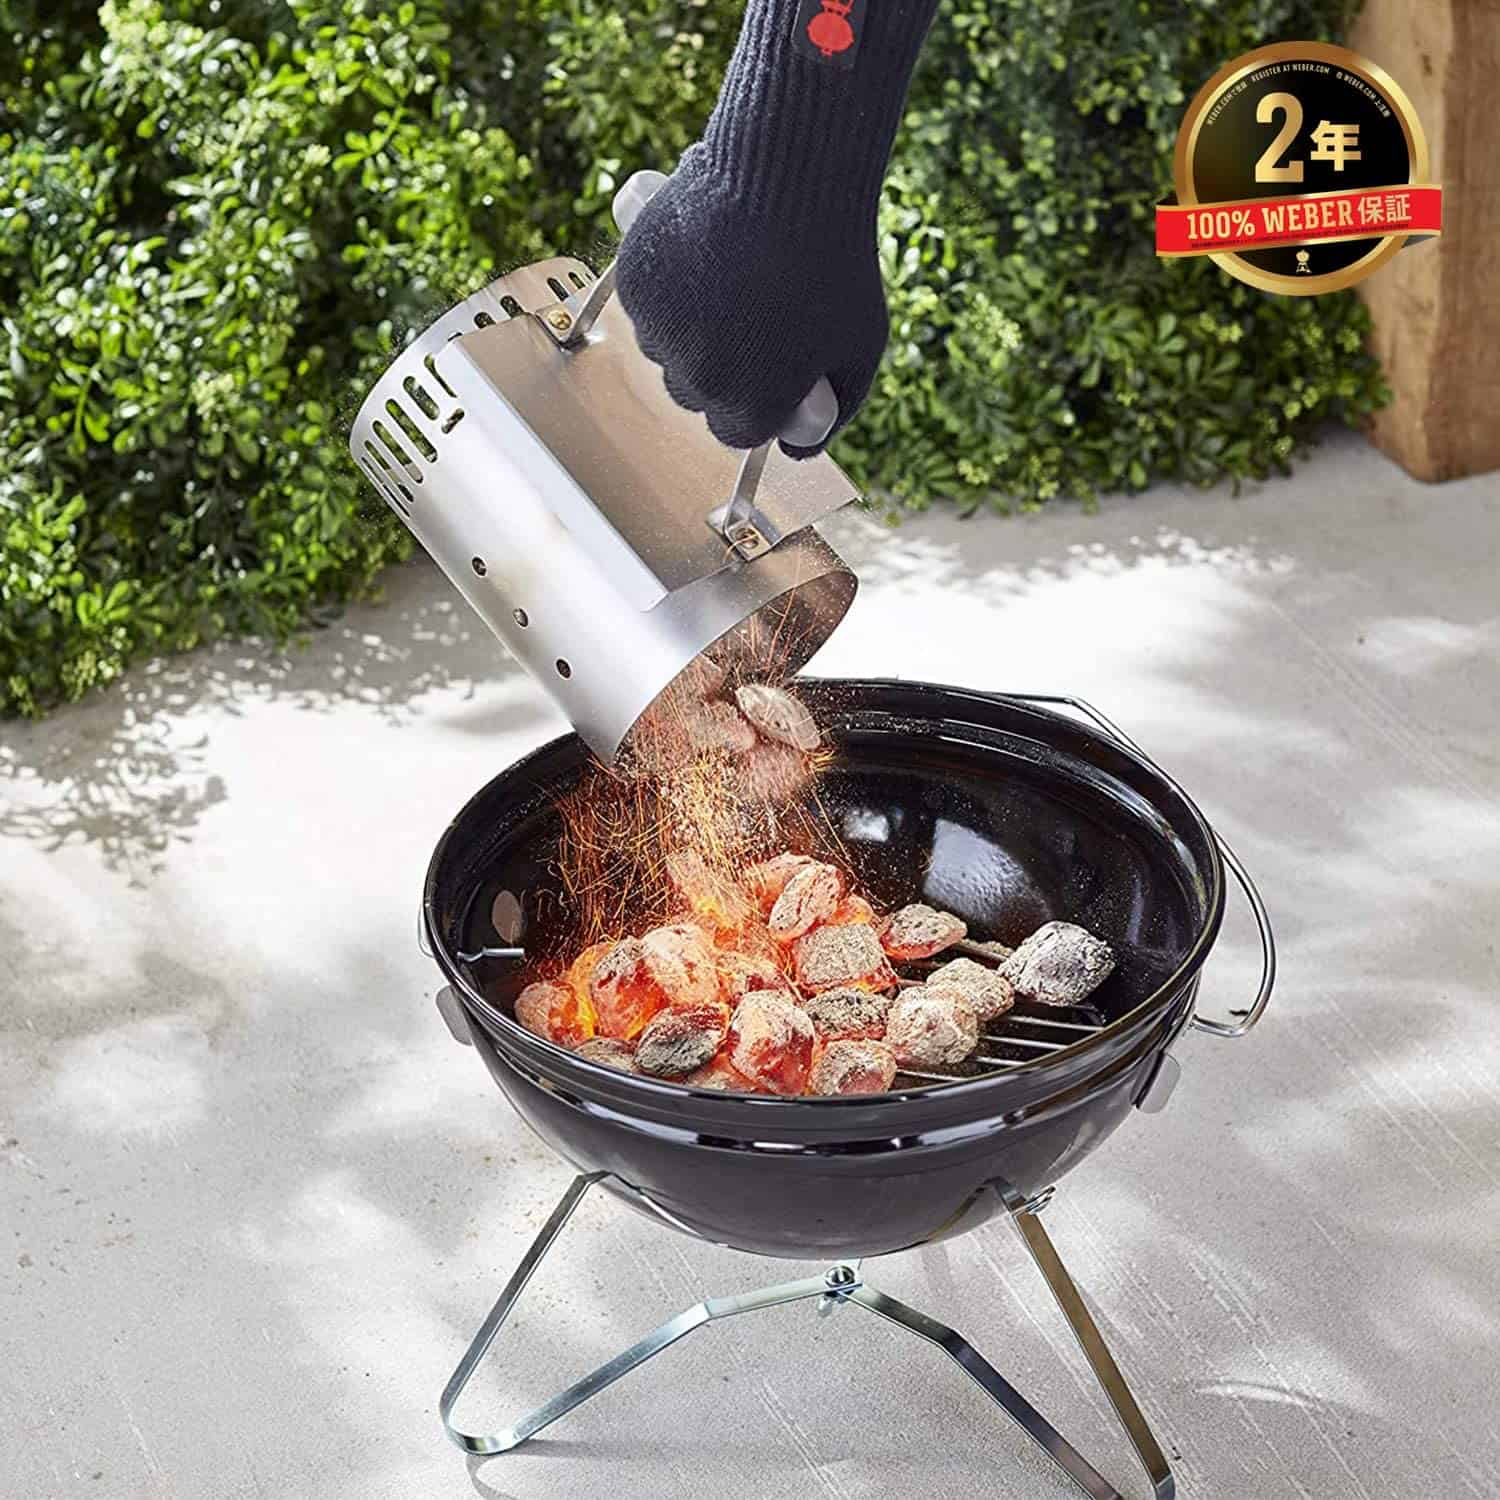 Best charcoal chimney starter- Weber 7447 Compact Rapidfire with coals